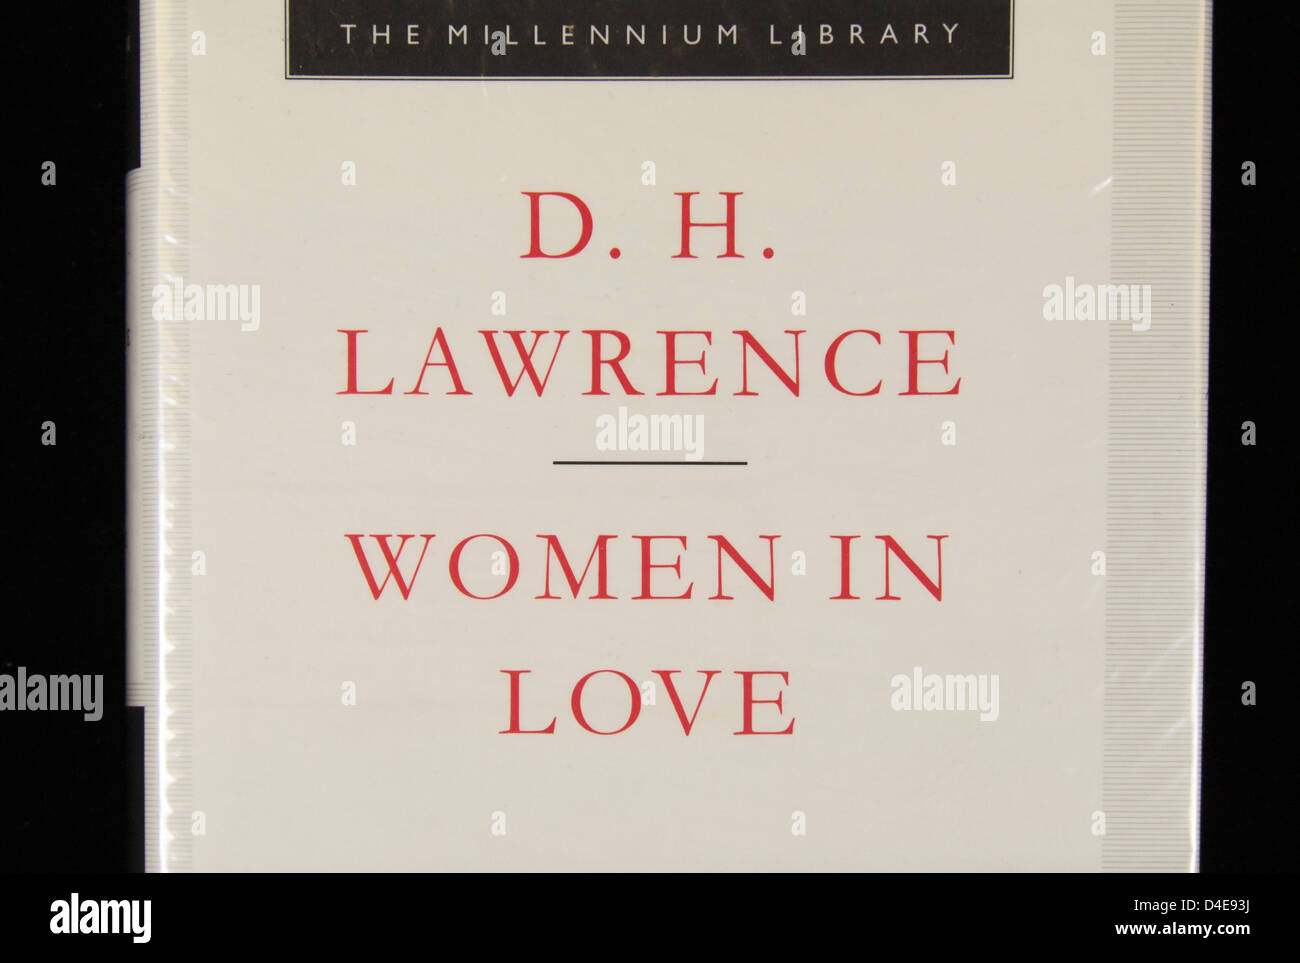 the rainbow by d h lawrence english literature essay Question 2 (suggested lime—40 minutes this question counts as one-thirdof the total essay section score) the following passage is from d h lawrence's 1915 novel, the rainbow, which focuses on the lives ofthe.